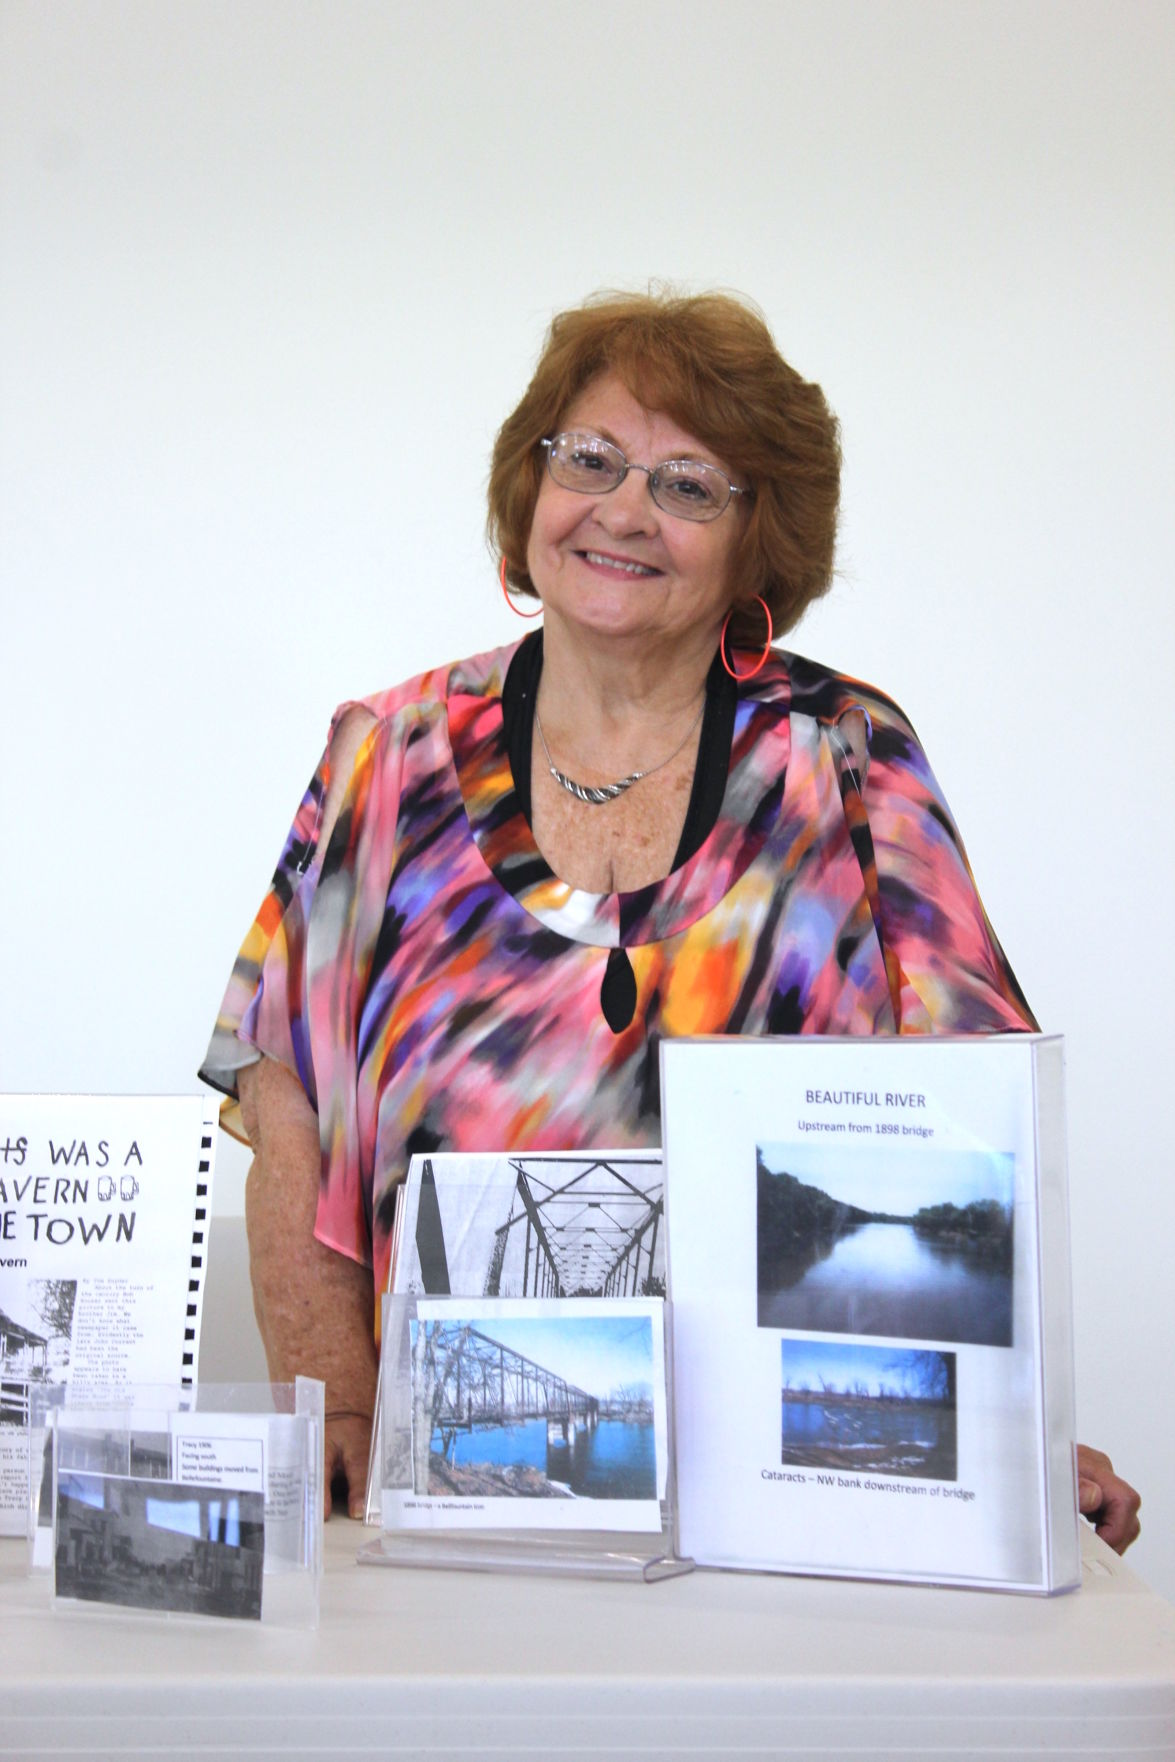 Linda Fox gives a presentation about Bellefountaine